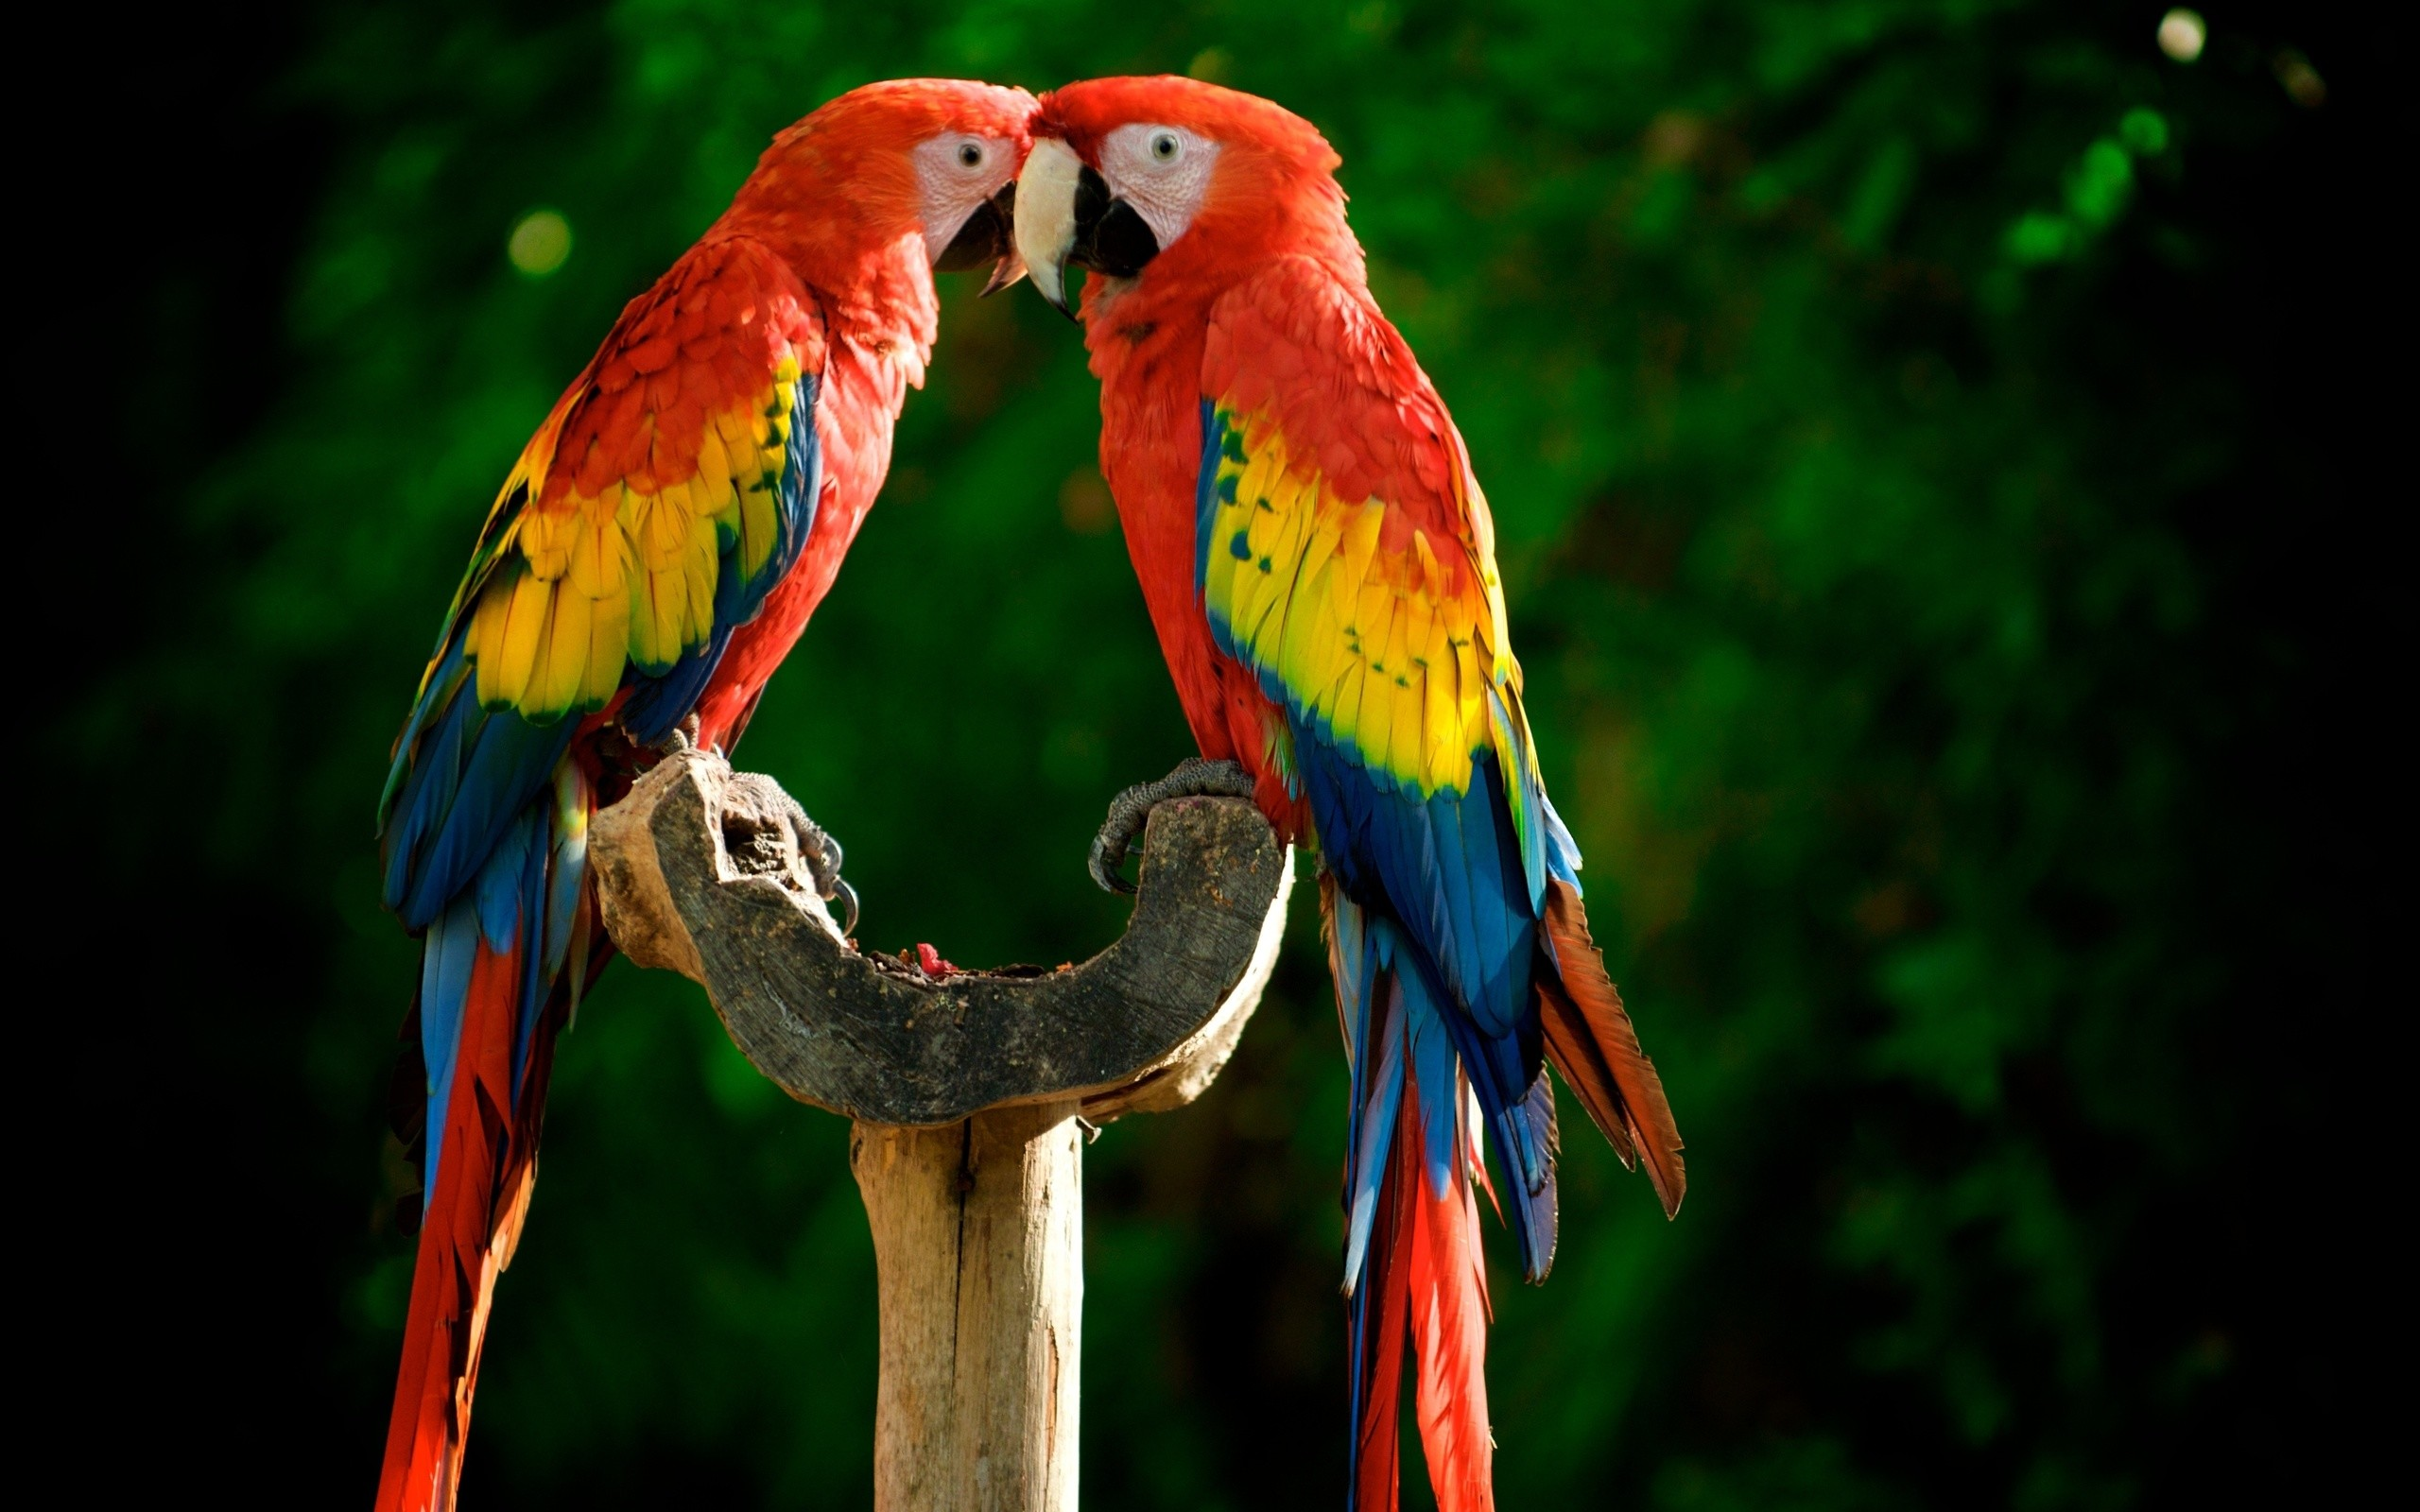 Colorful Parrot Birds Images Photos Wallpapers